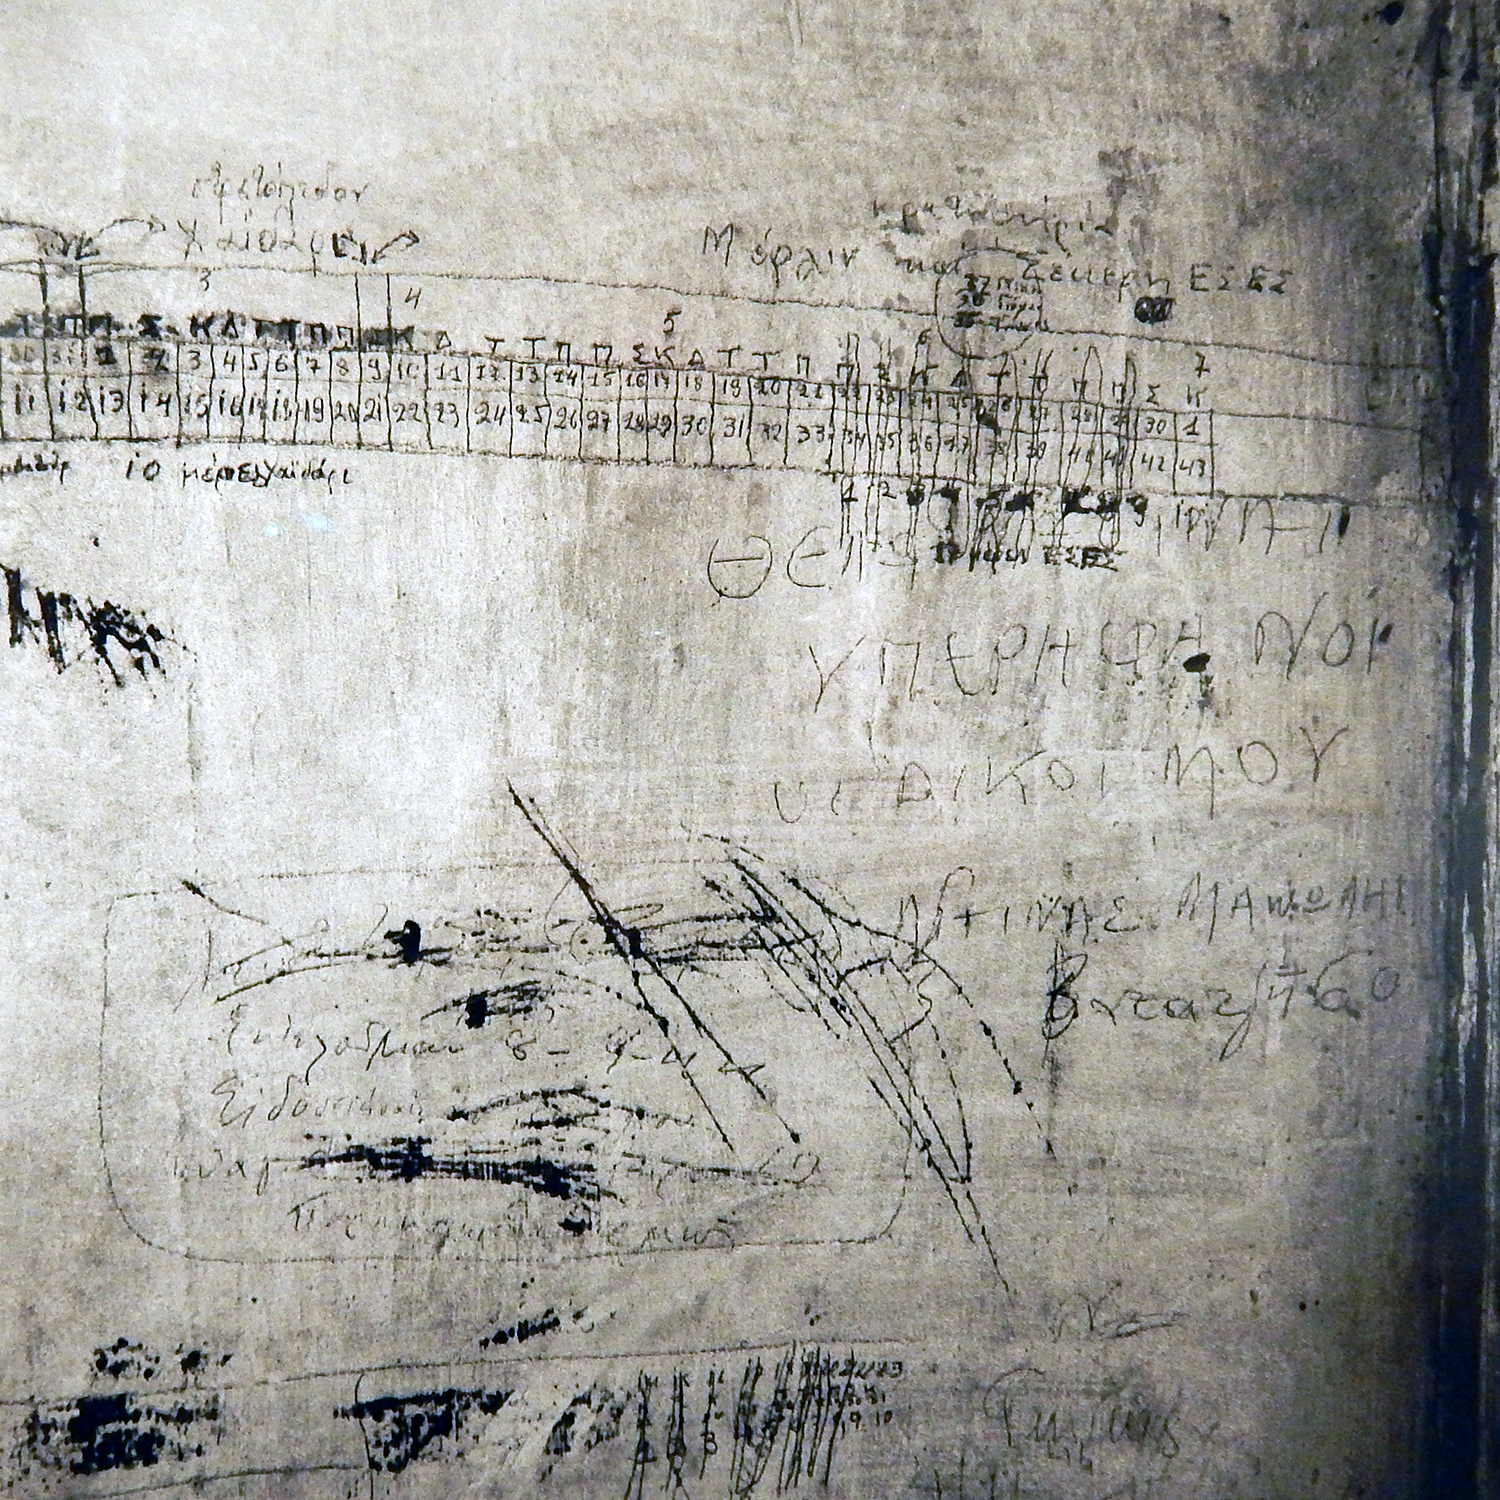 Voula Papaioannou,  Prisoners' notes written on the walls of the German prison on Merlin Street, Athens  (1944)